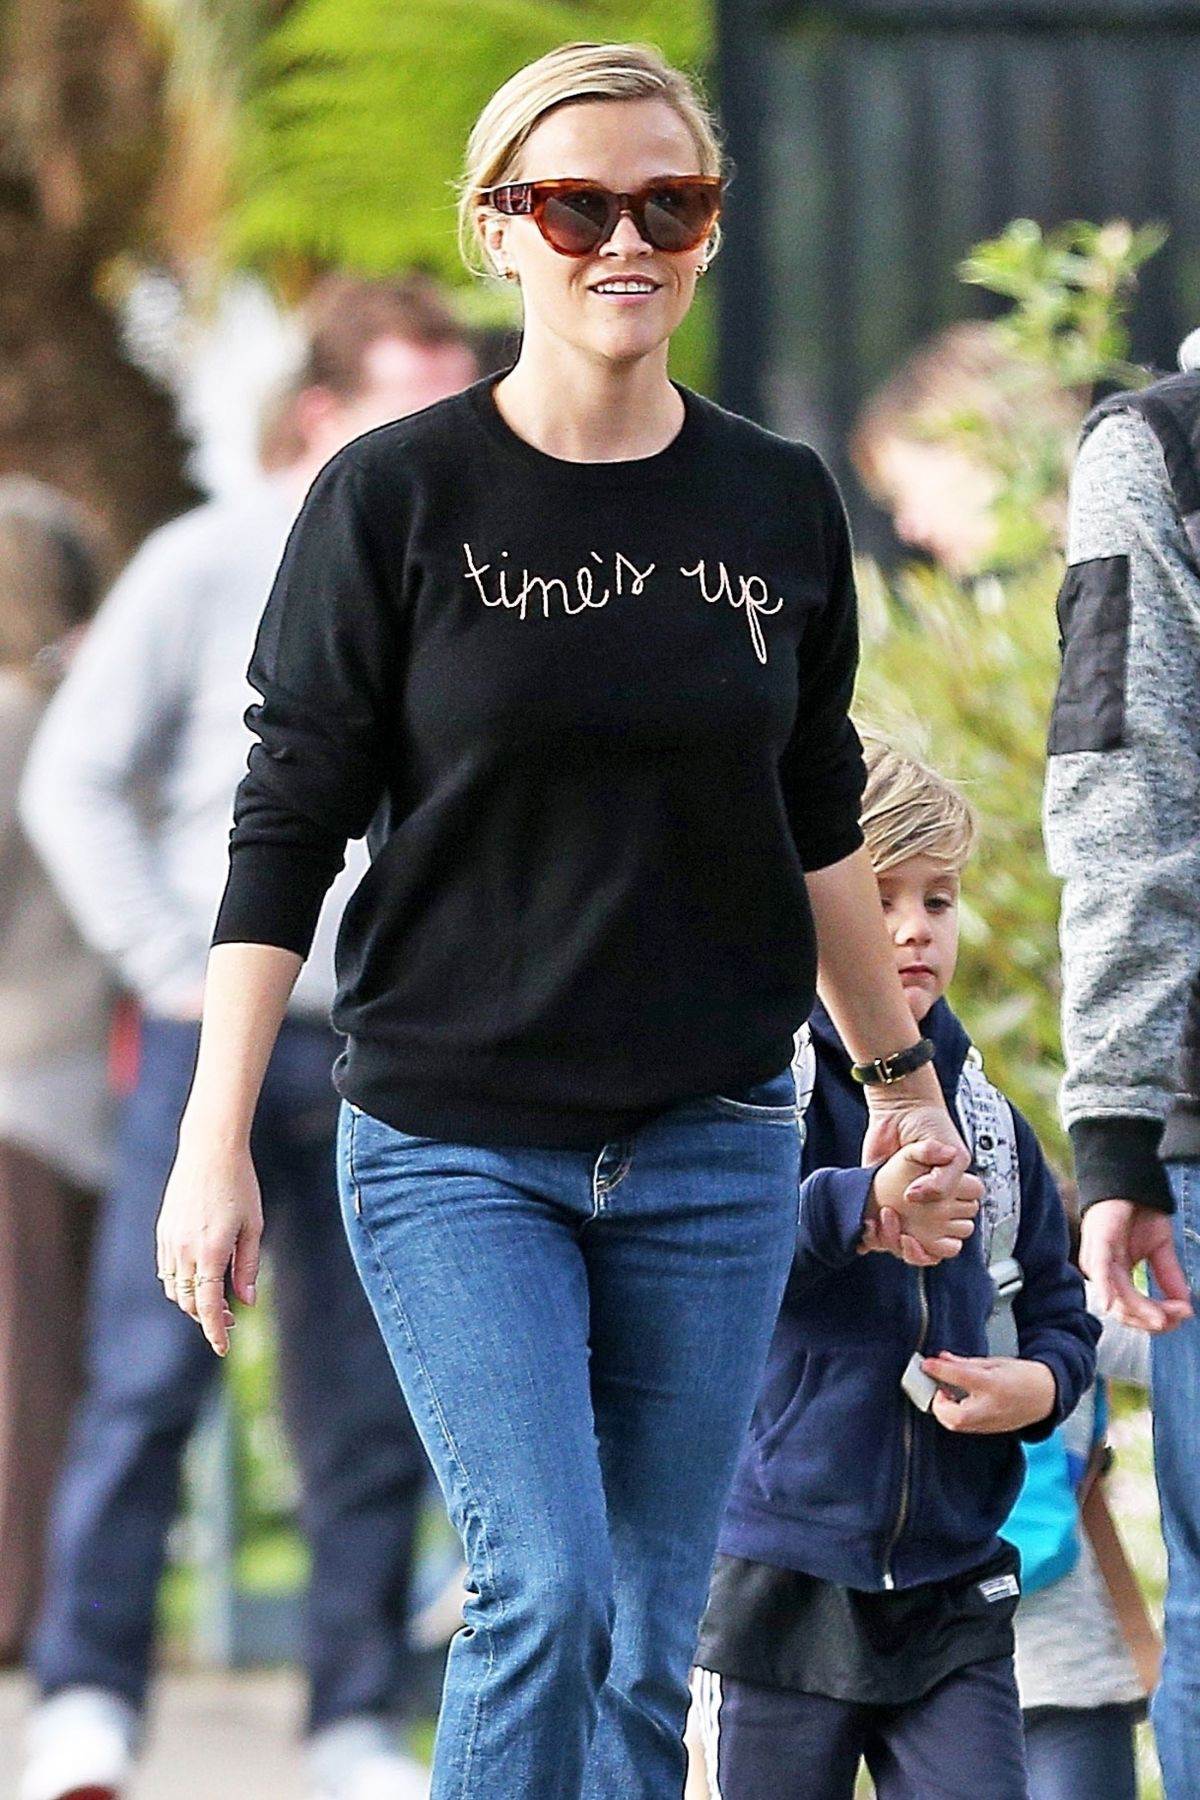 Reese Witherspoon Rocks A Time S Up Shirt While Dropping Off Her Son Tennessee James Toth In Los Angeles Celebzz Celebzz Reese witherspoon welcomes son tennessee james toth. celebzz